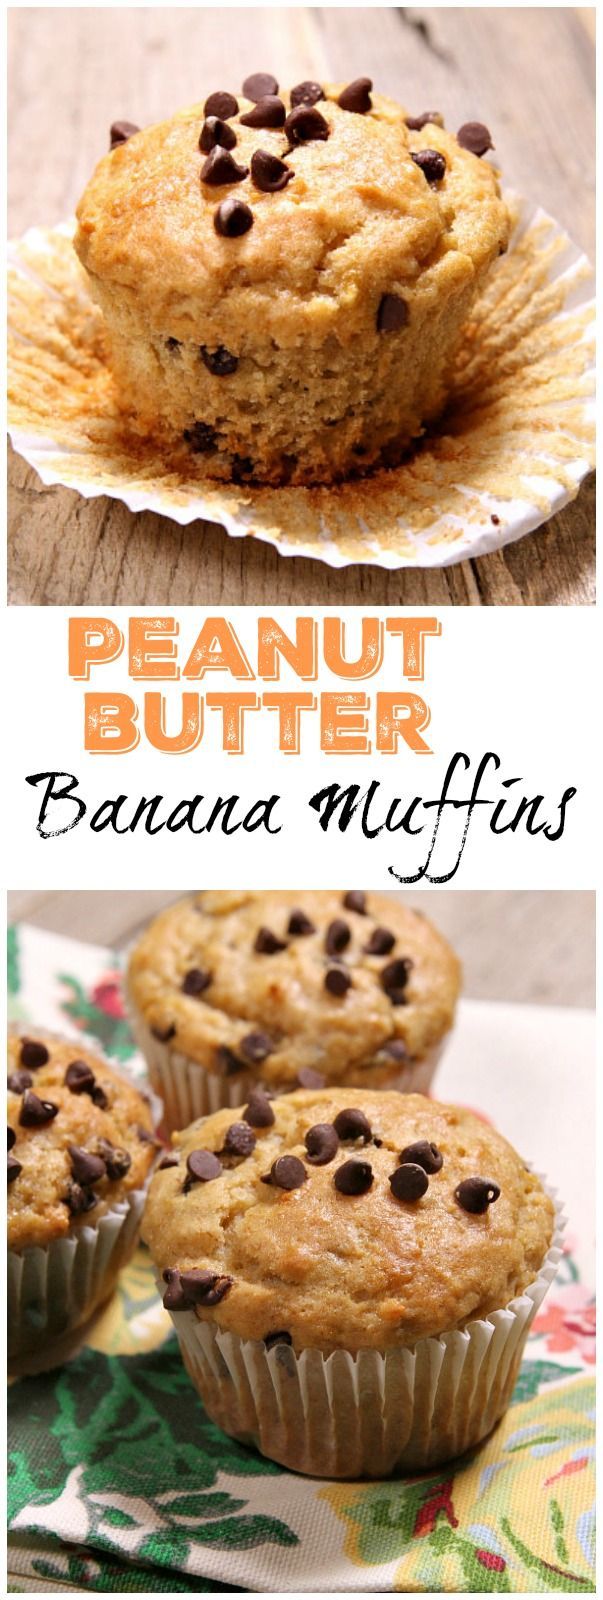 Peanut Butter Banana Muffins recipe with a sprinkle of chocolate chips!  Recipe from RecipeGirl.com.